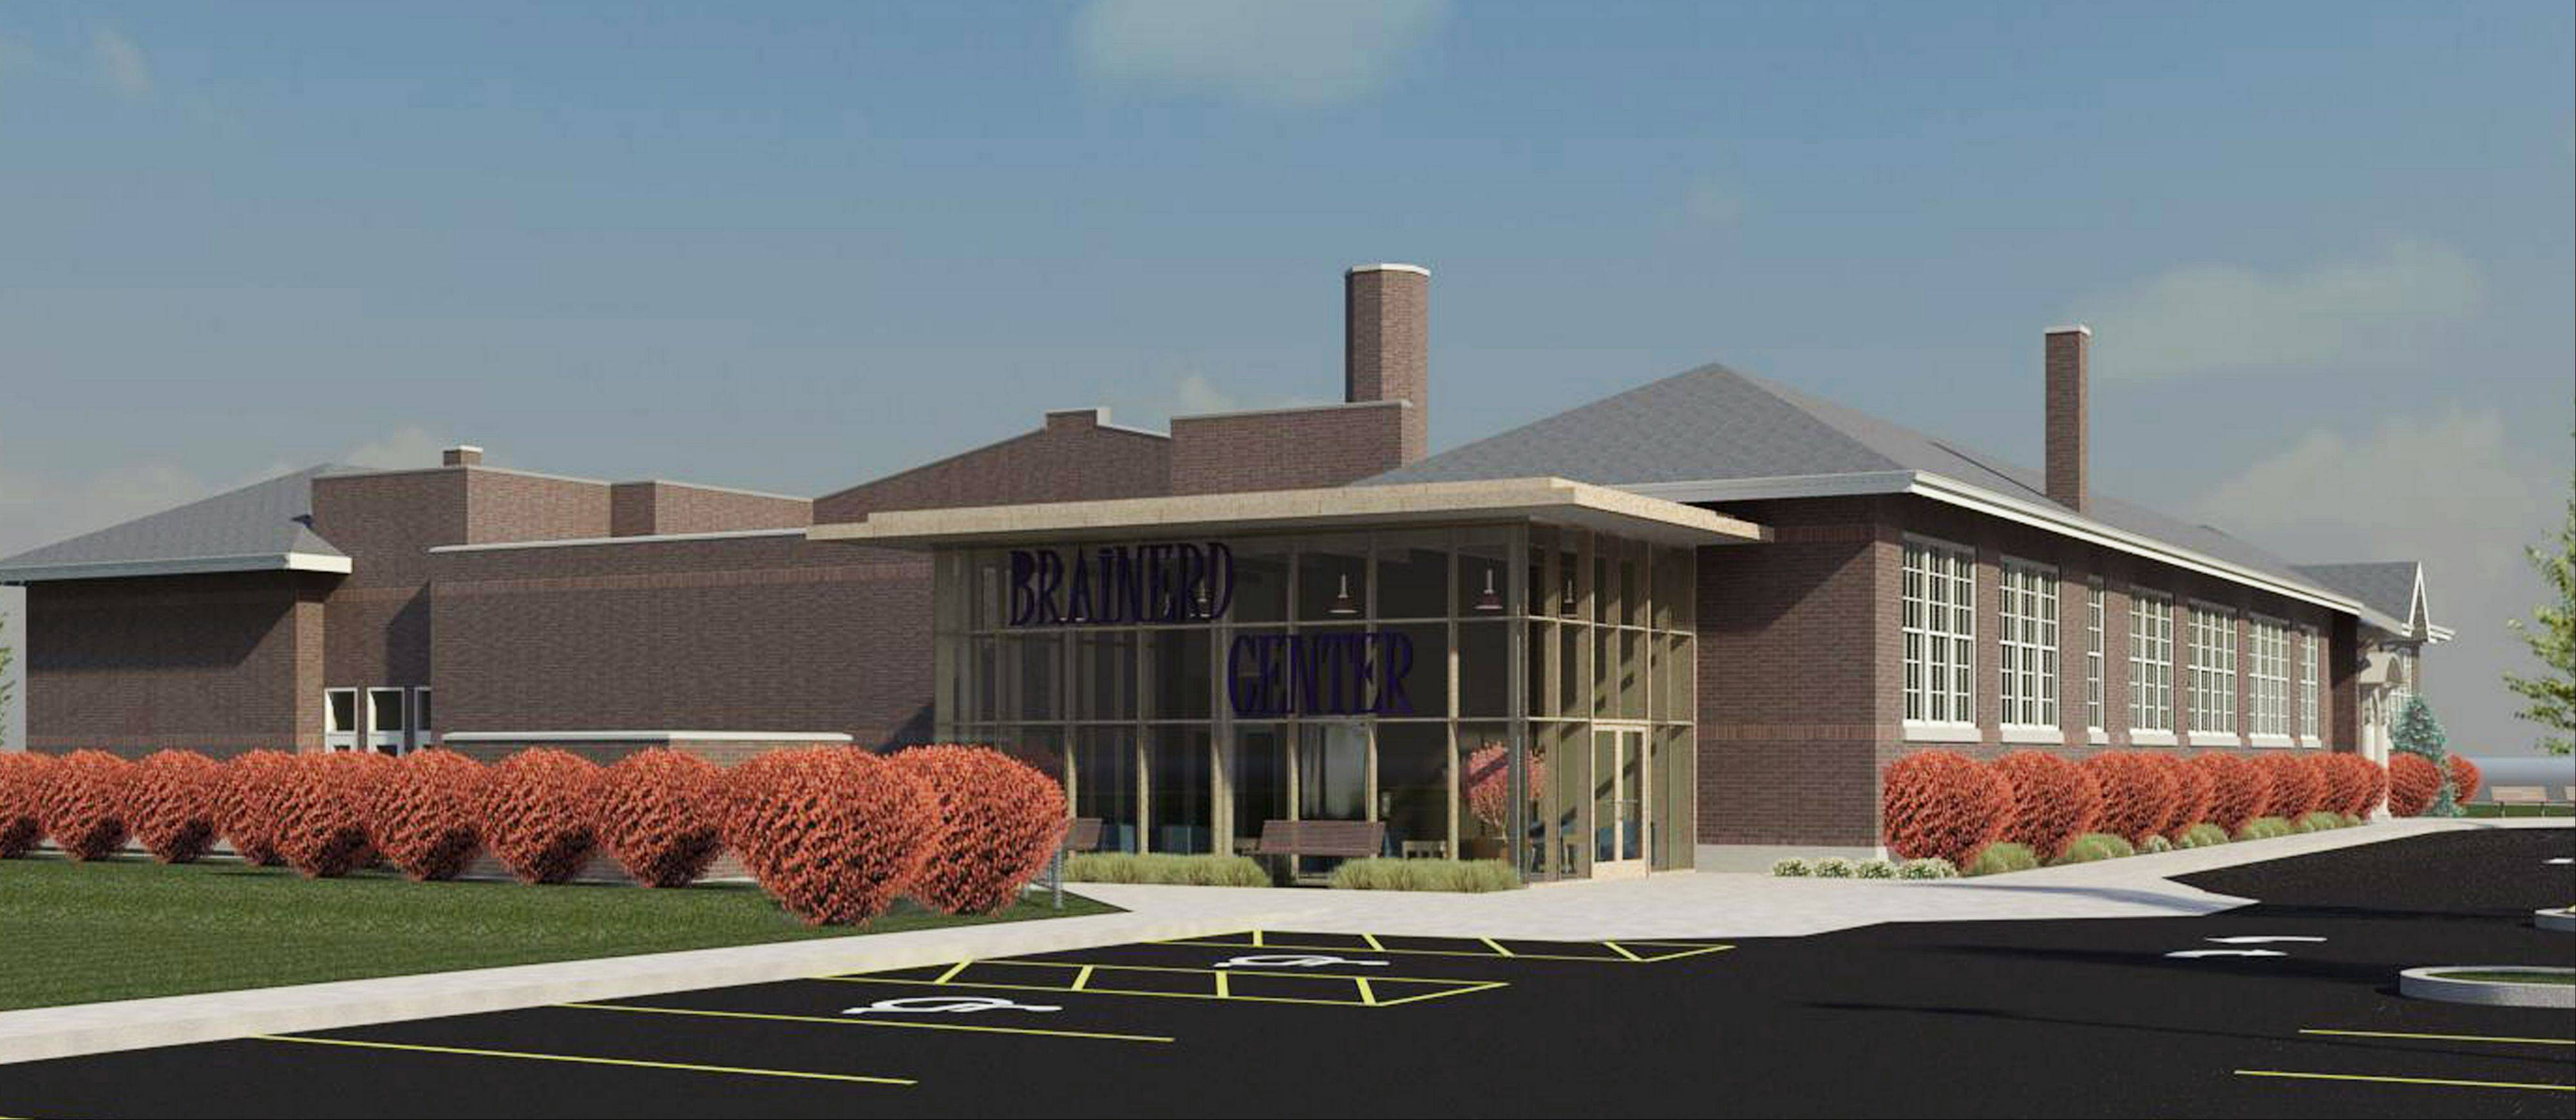 This is an artist's rendering of the proposed Brainerd Community Center in Libertyville.